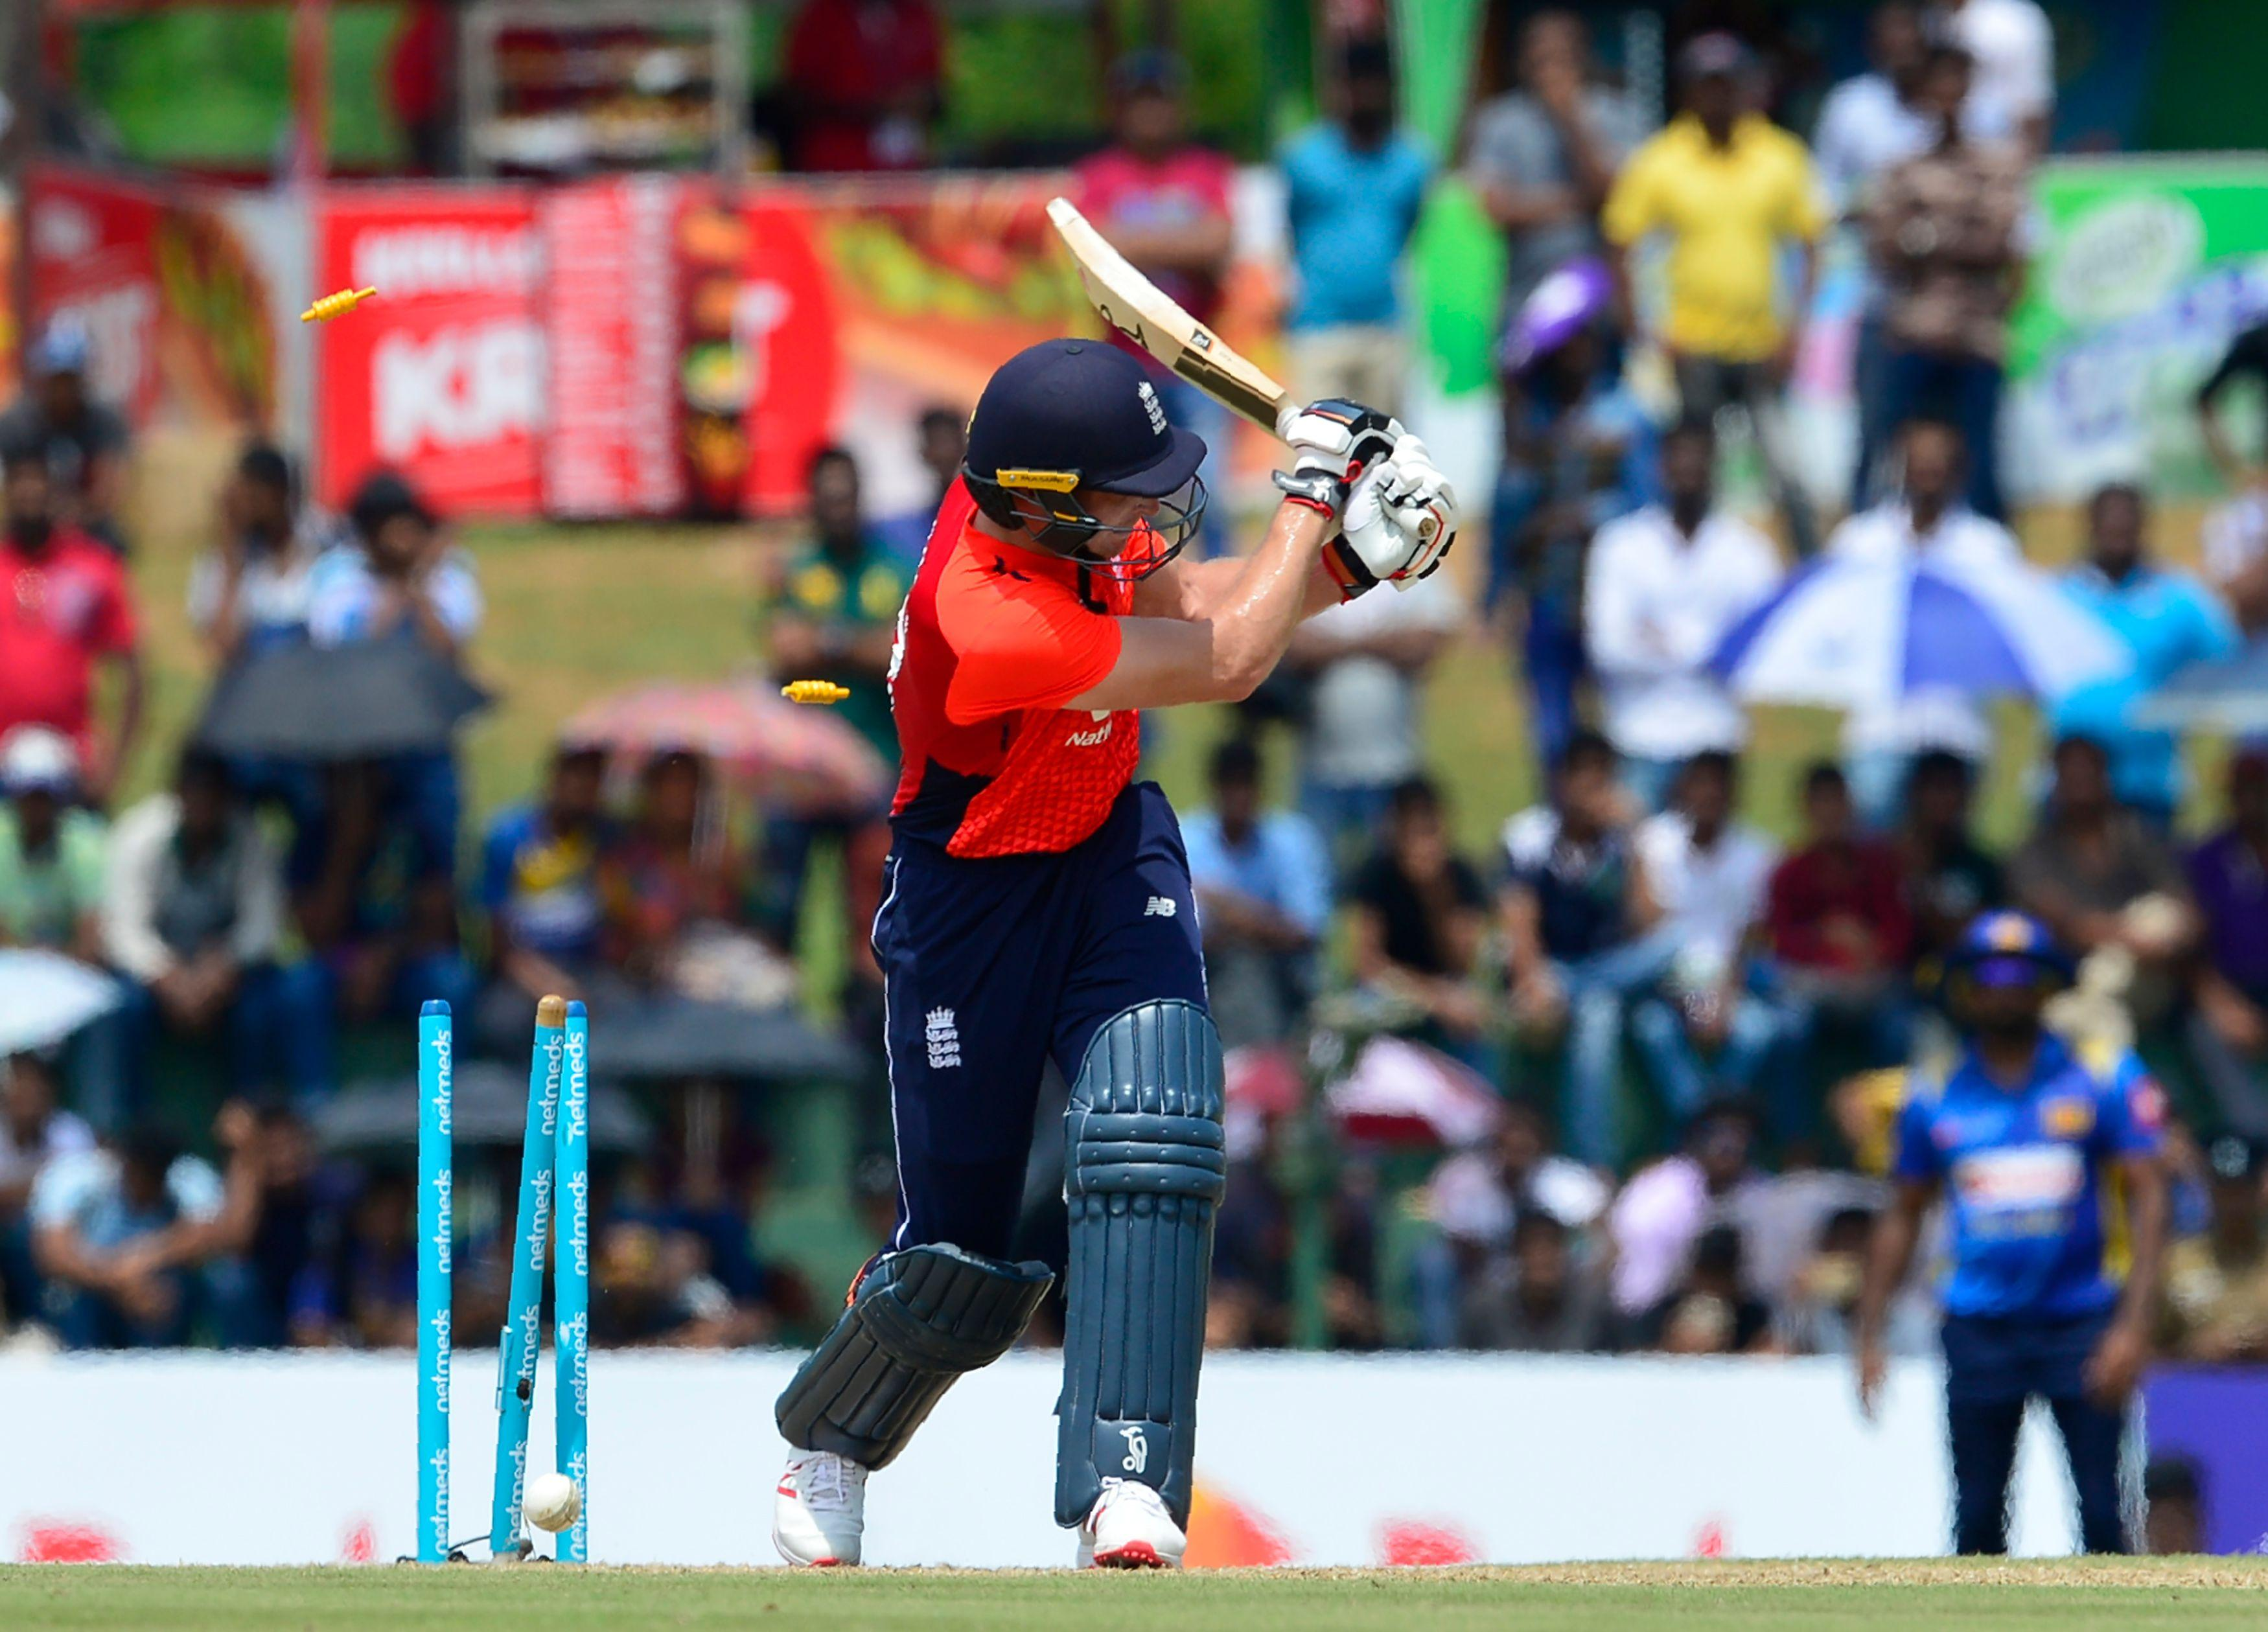 Jos Buttler notched up 28 runs before being bowled by Nuwan Pradeep